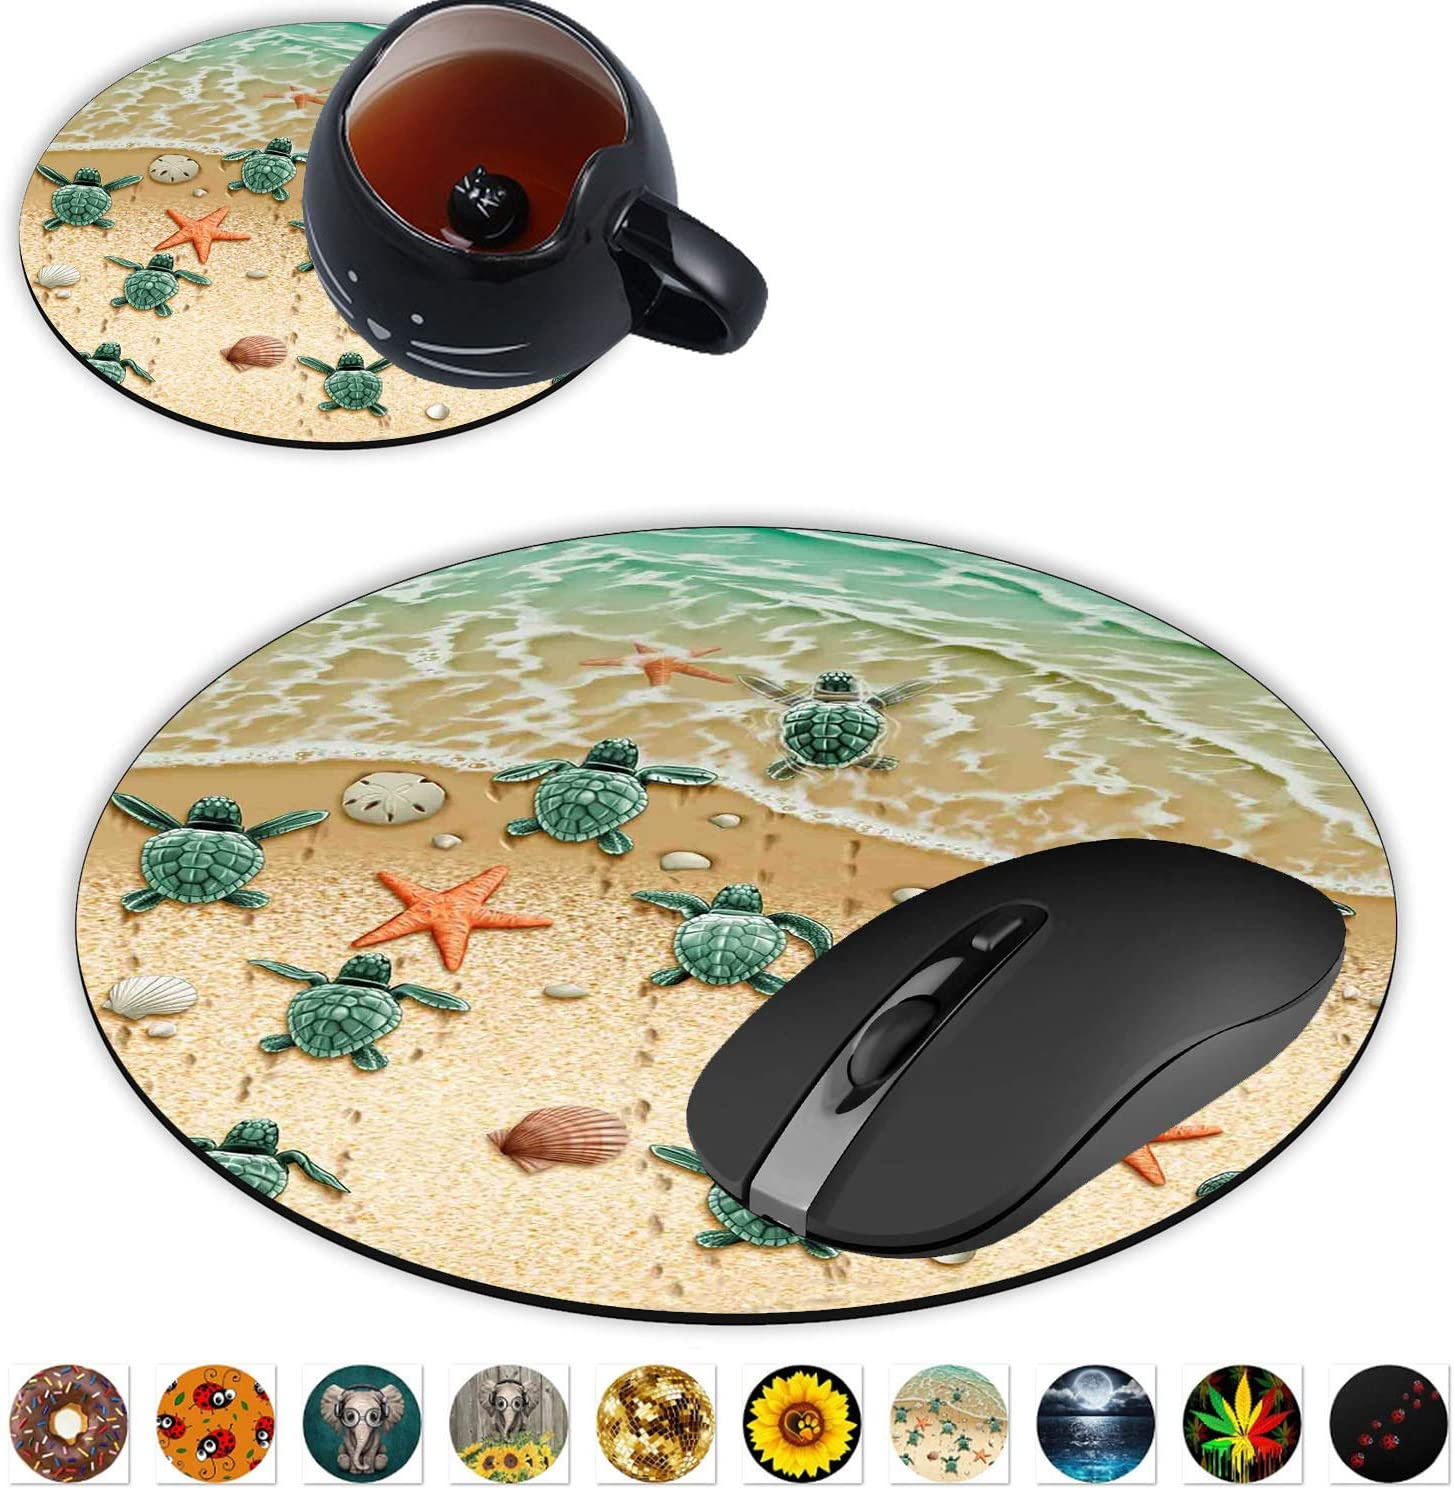 Round Mouse Pad and Coasters Set, Sea Turtles on The Beach, Starfish Shell Blue Ocean Painting Art Mousepad, Anti Slip Rubber Round Mousepads Desktop Notebook Mouse Mat for Working and Gaming